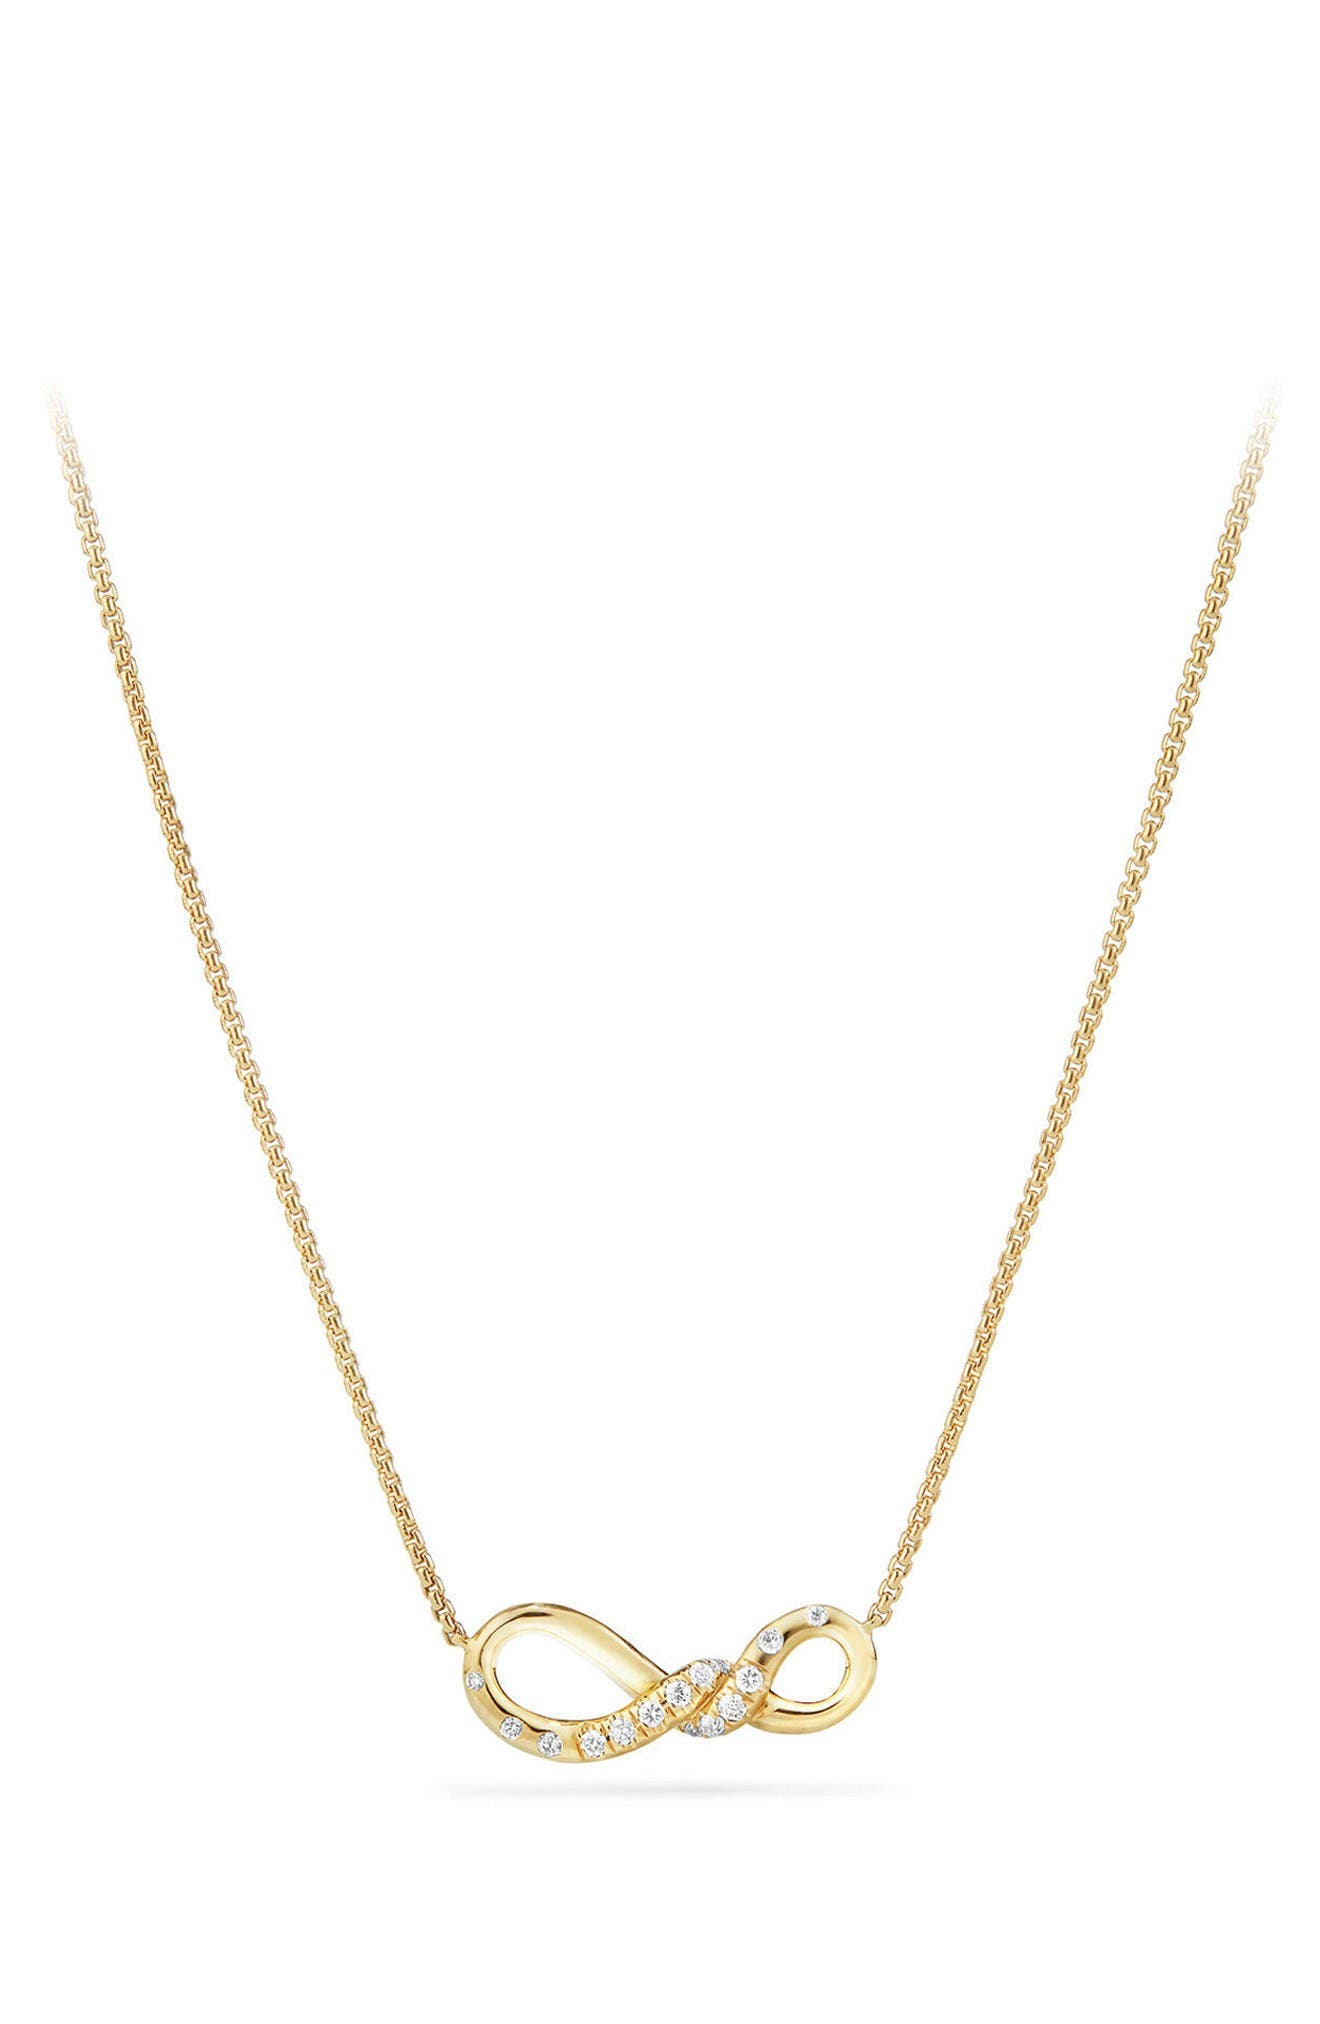 DAVID YURMAN Continuance Pendant Necklace in 18K Gold with Diamonds